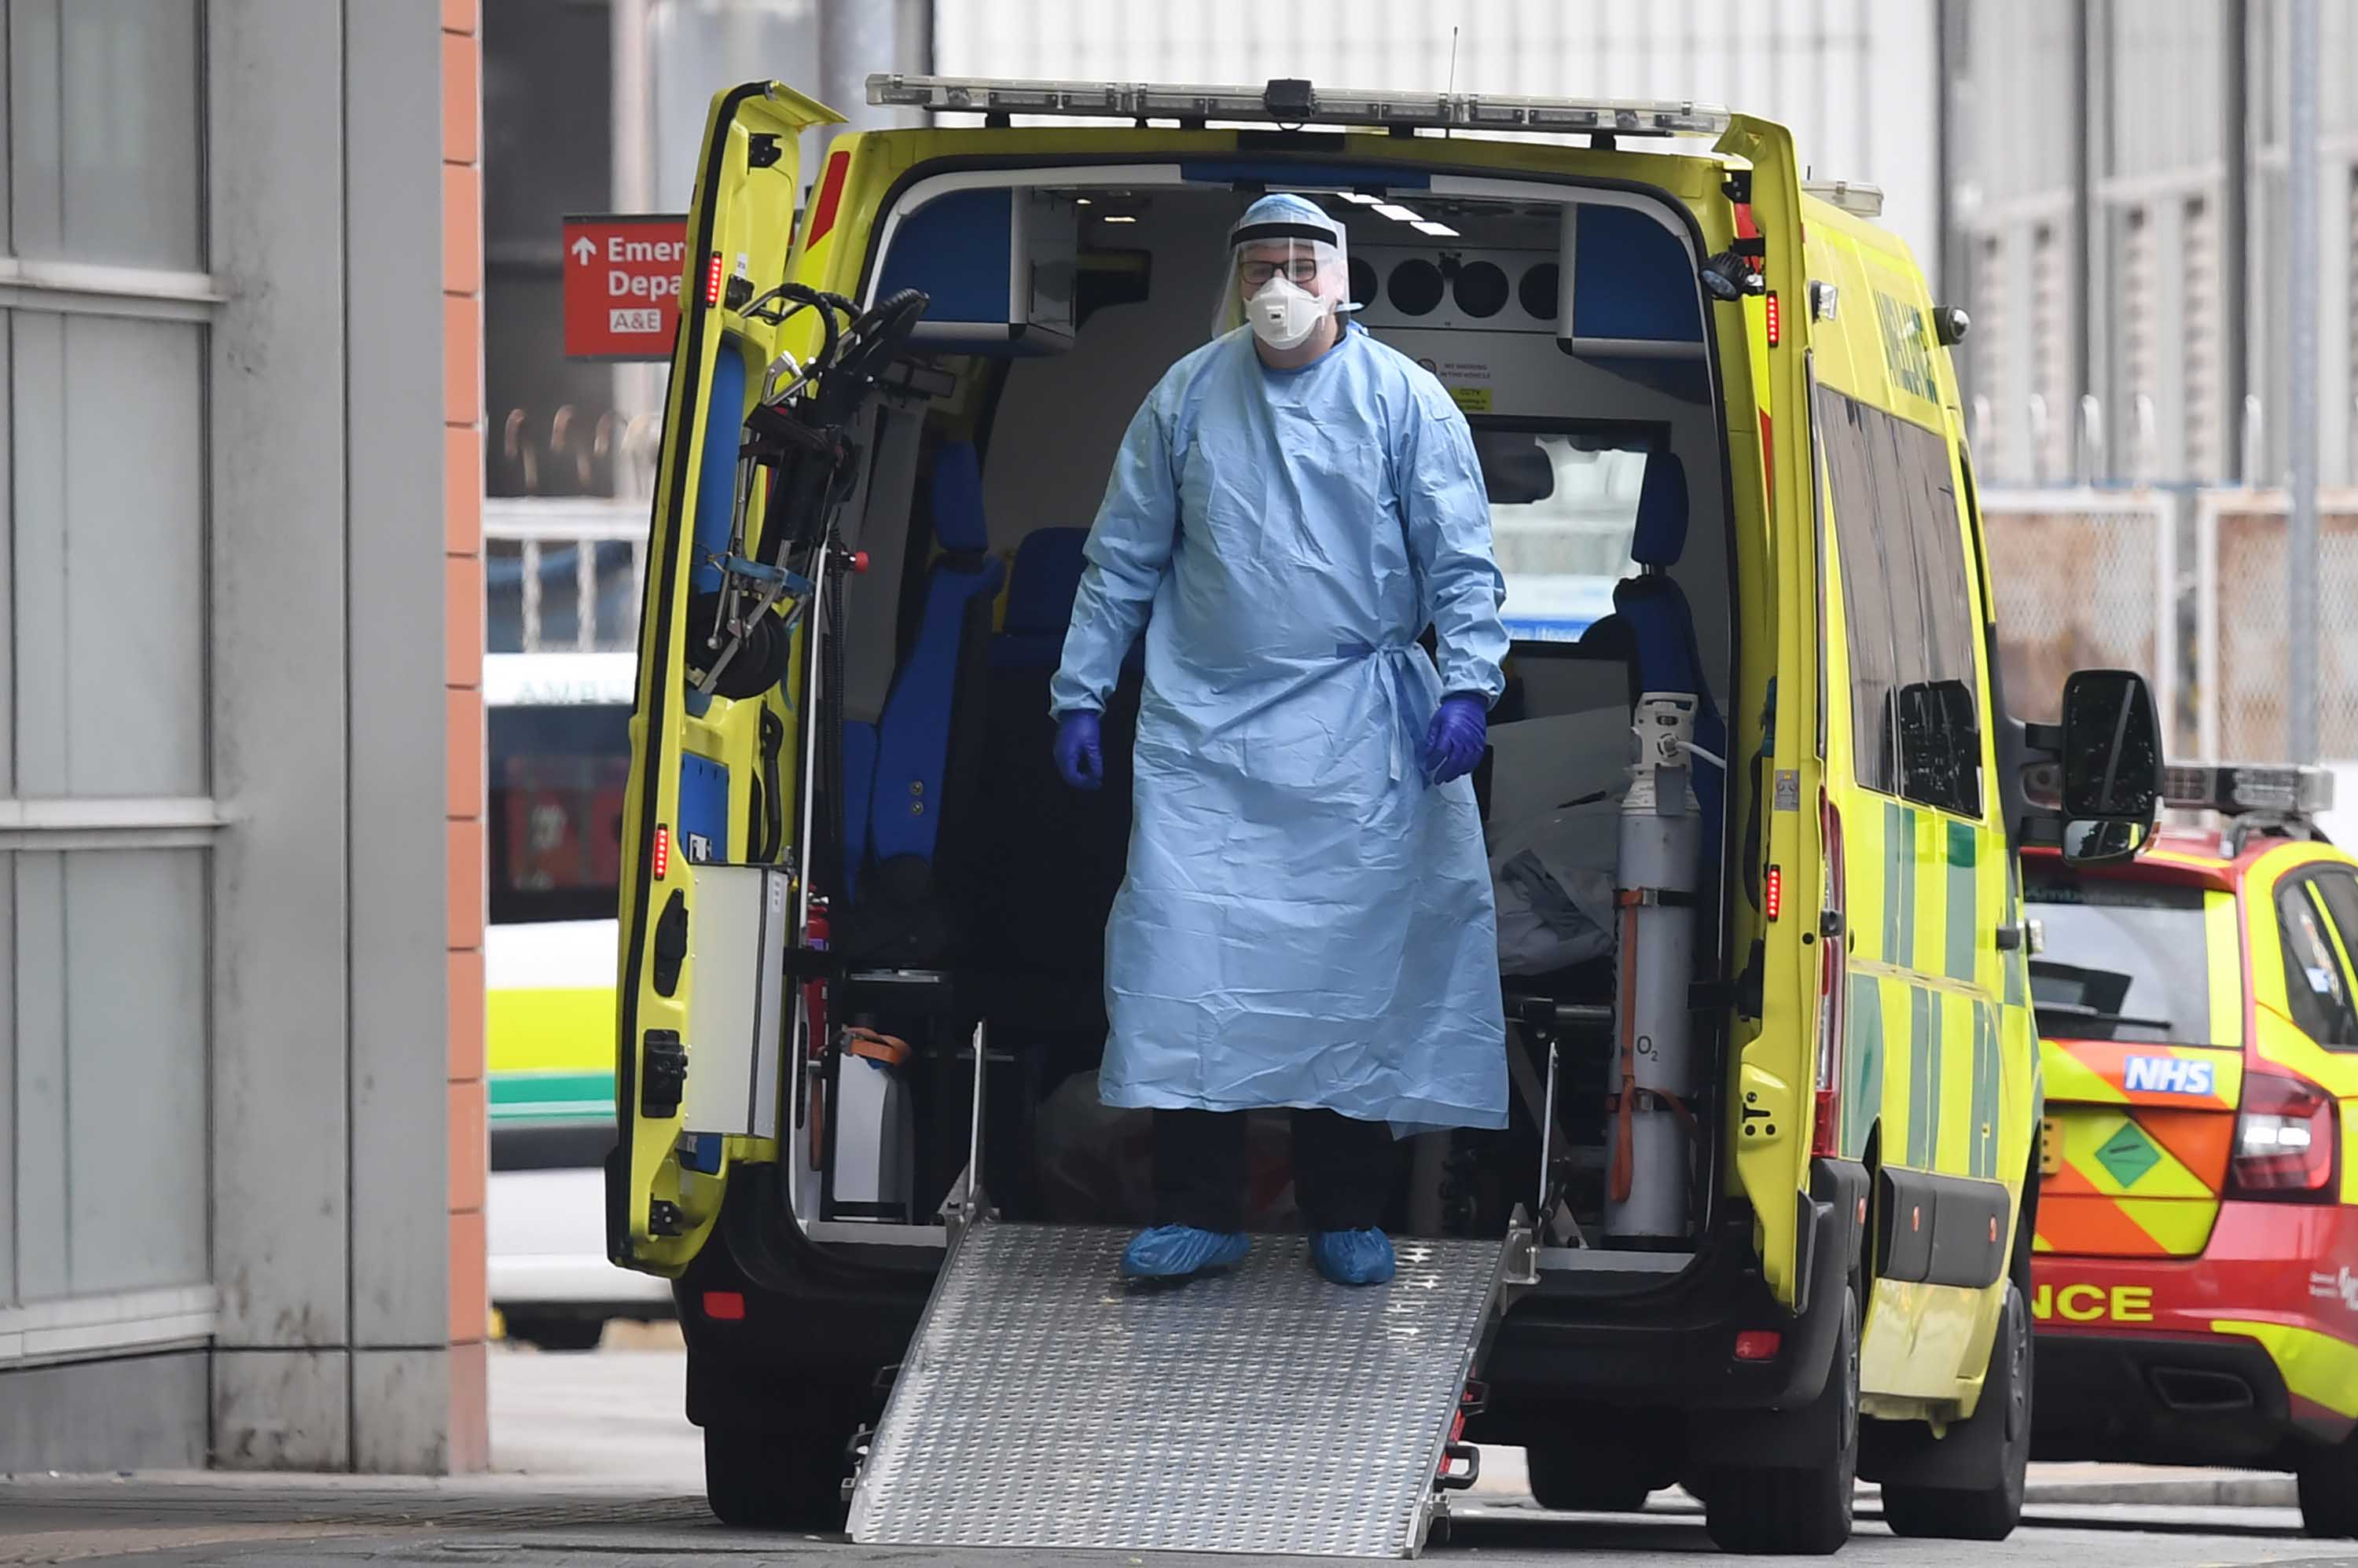 A health worker wears personal protective equipment in an ambulance after transferring a patient into The Royal London Hospital on April 18.